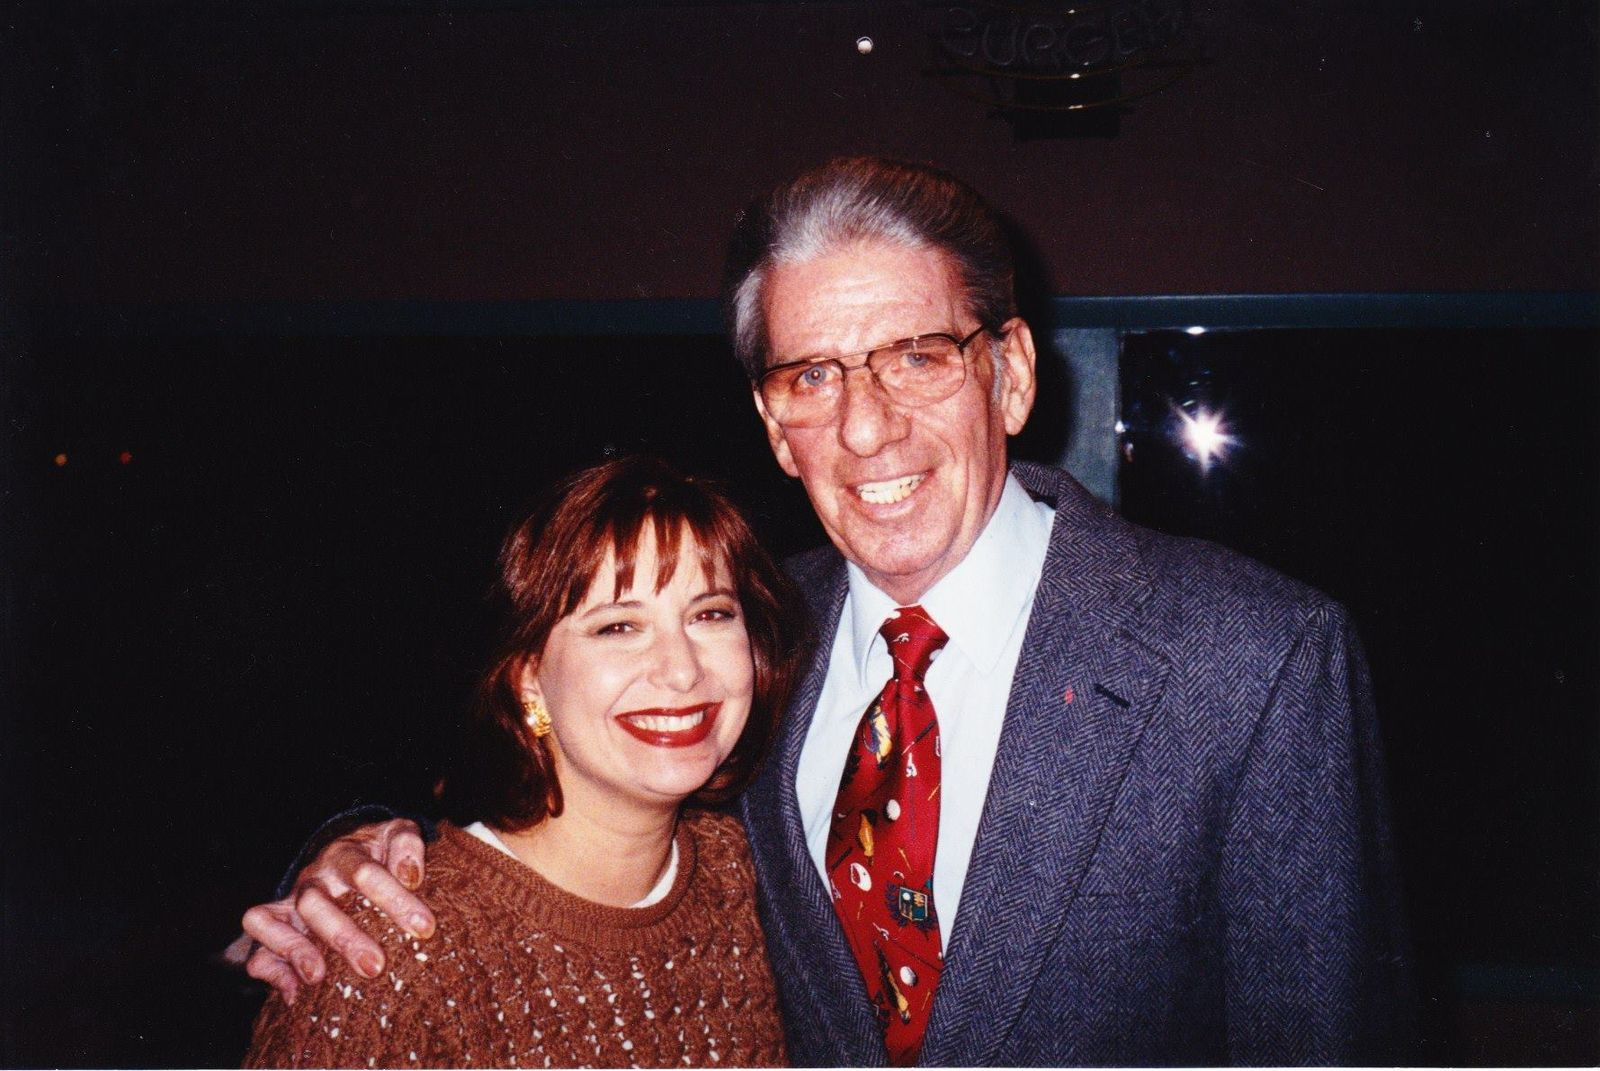 Kim Block with former WGME Sportcaster Frank Fixaris (WGME)